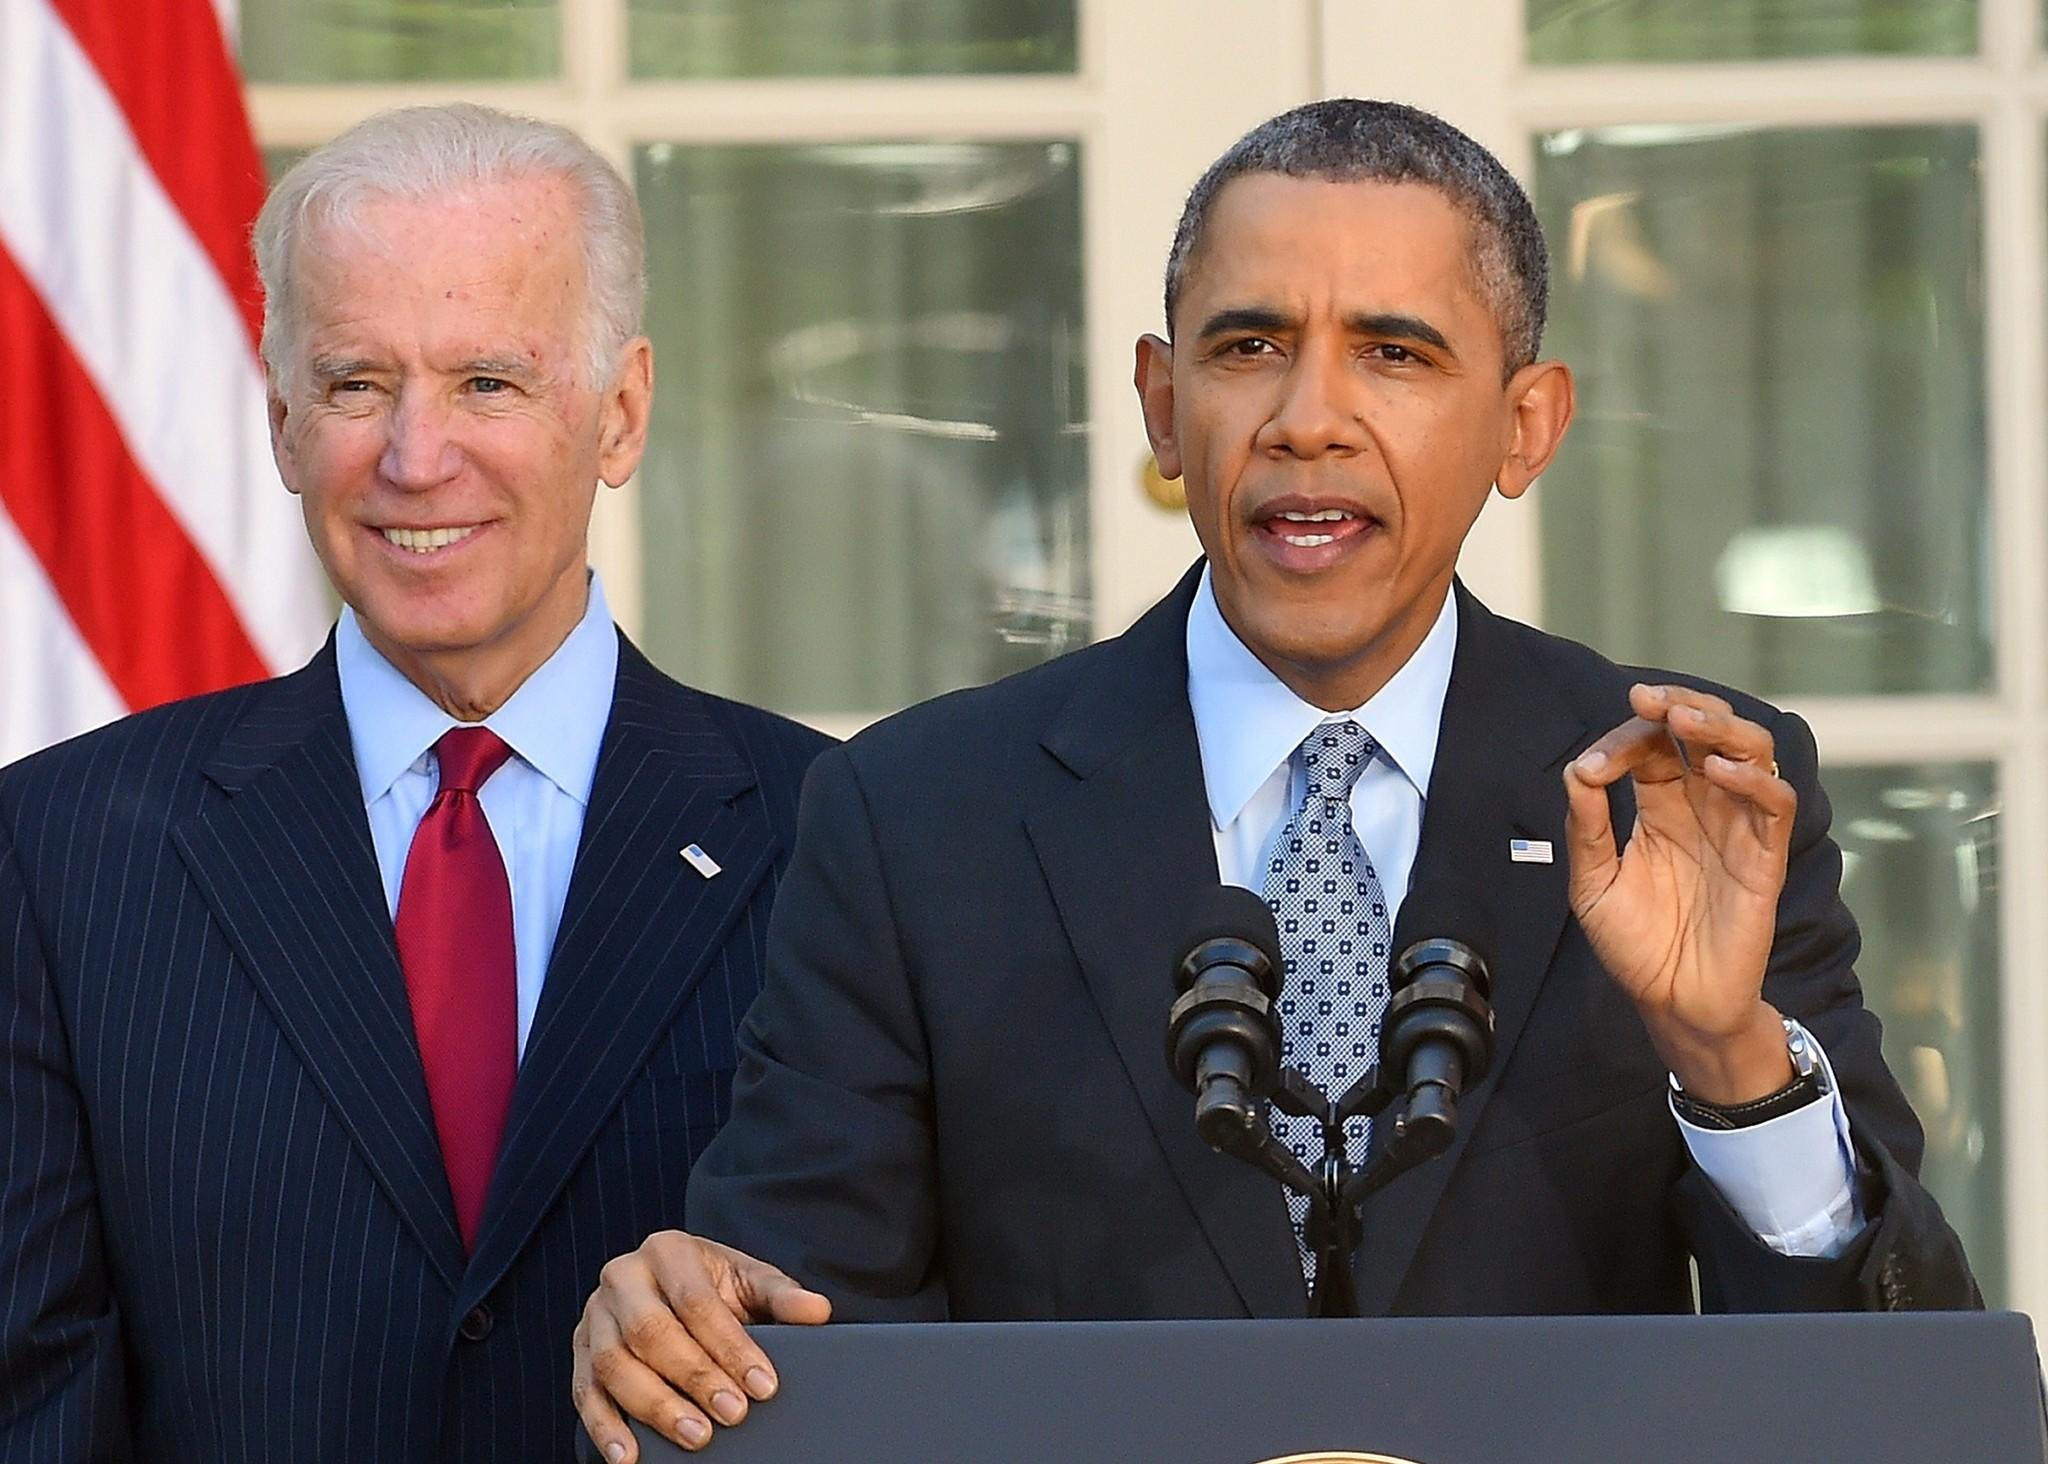 President Barack Obama is accompanied by Vice President Joe Biden as he delivers a statement on the Affordable Care Act at the Rose Garden of the White House in Washington, DC. Obama cheered seven million people who signed up for insurance under his healthcare law, and lashed out at political foes who he said were bent on denying care to Americans.